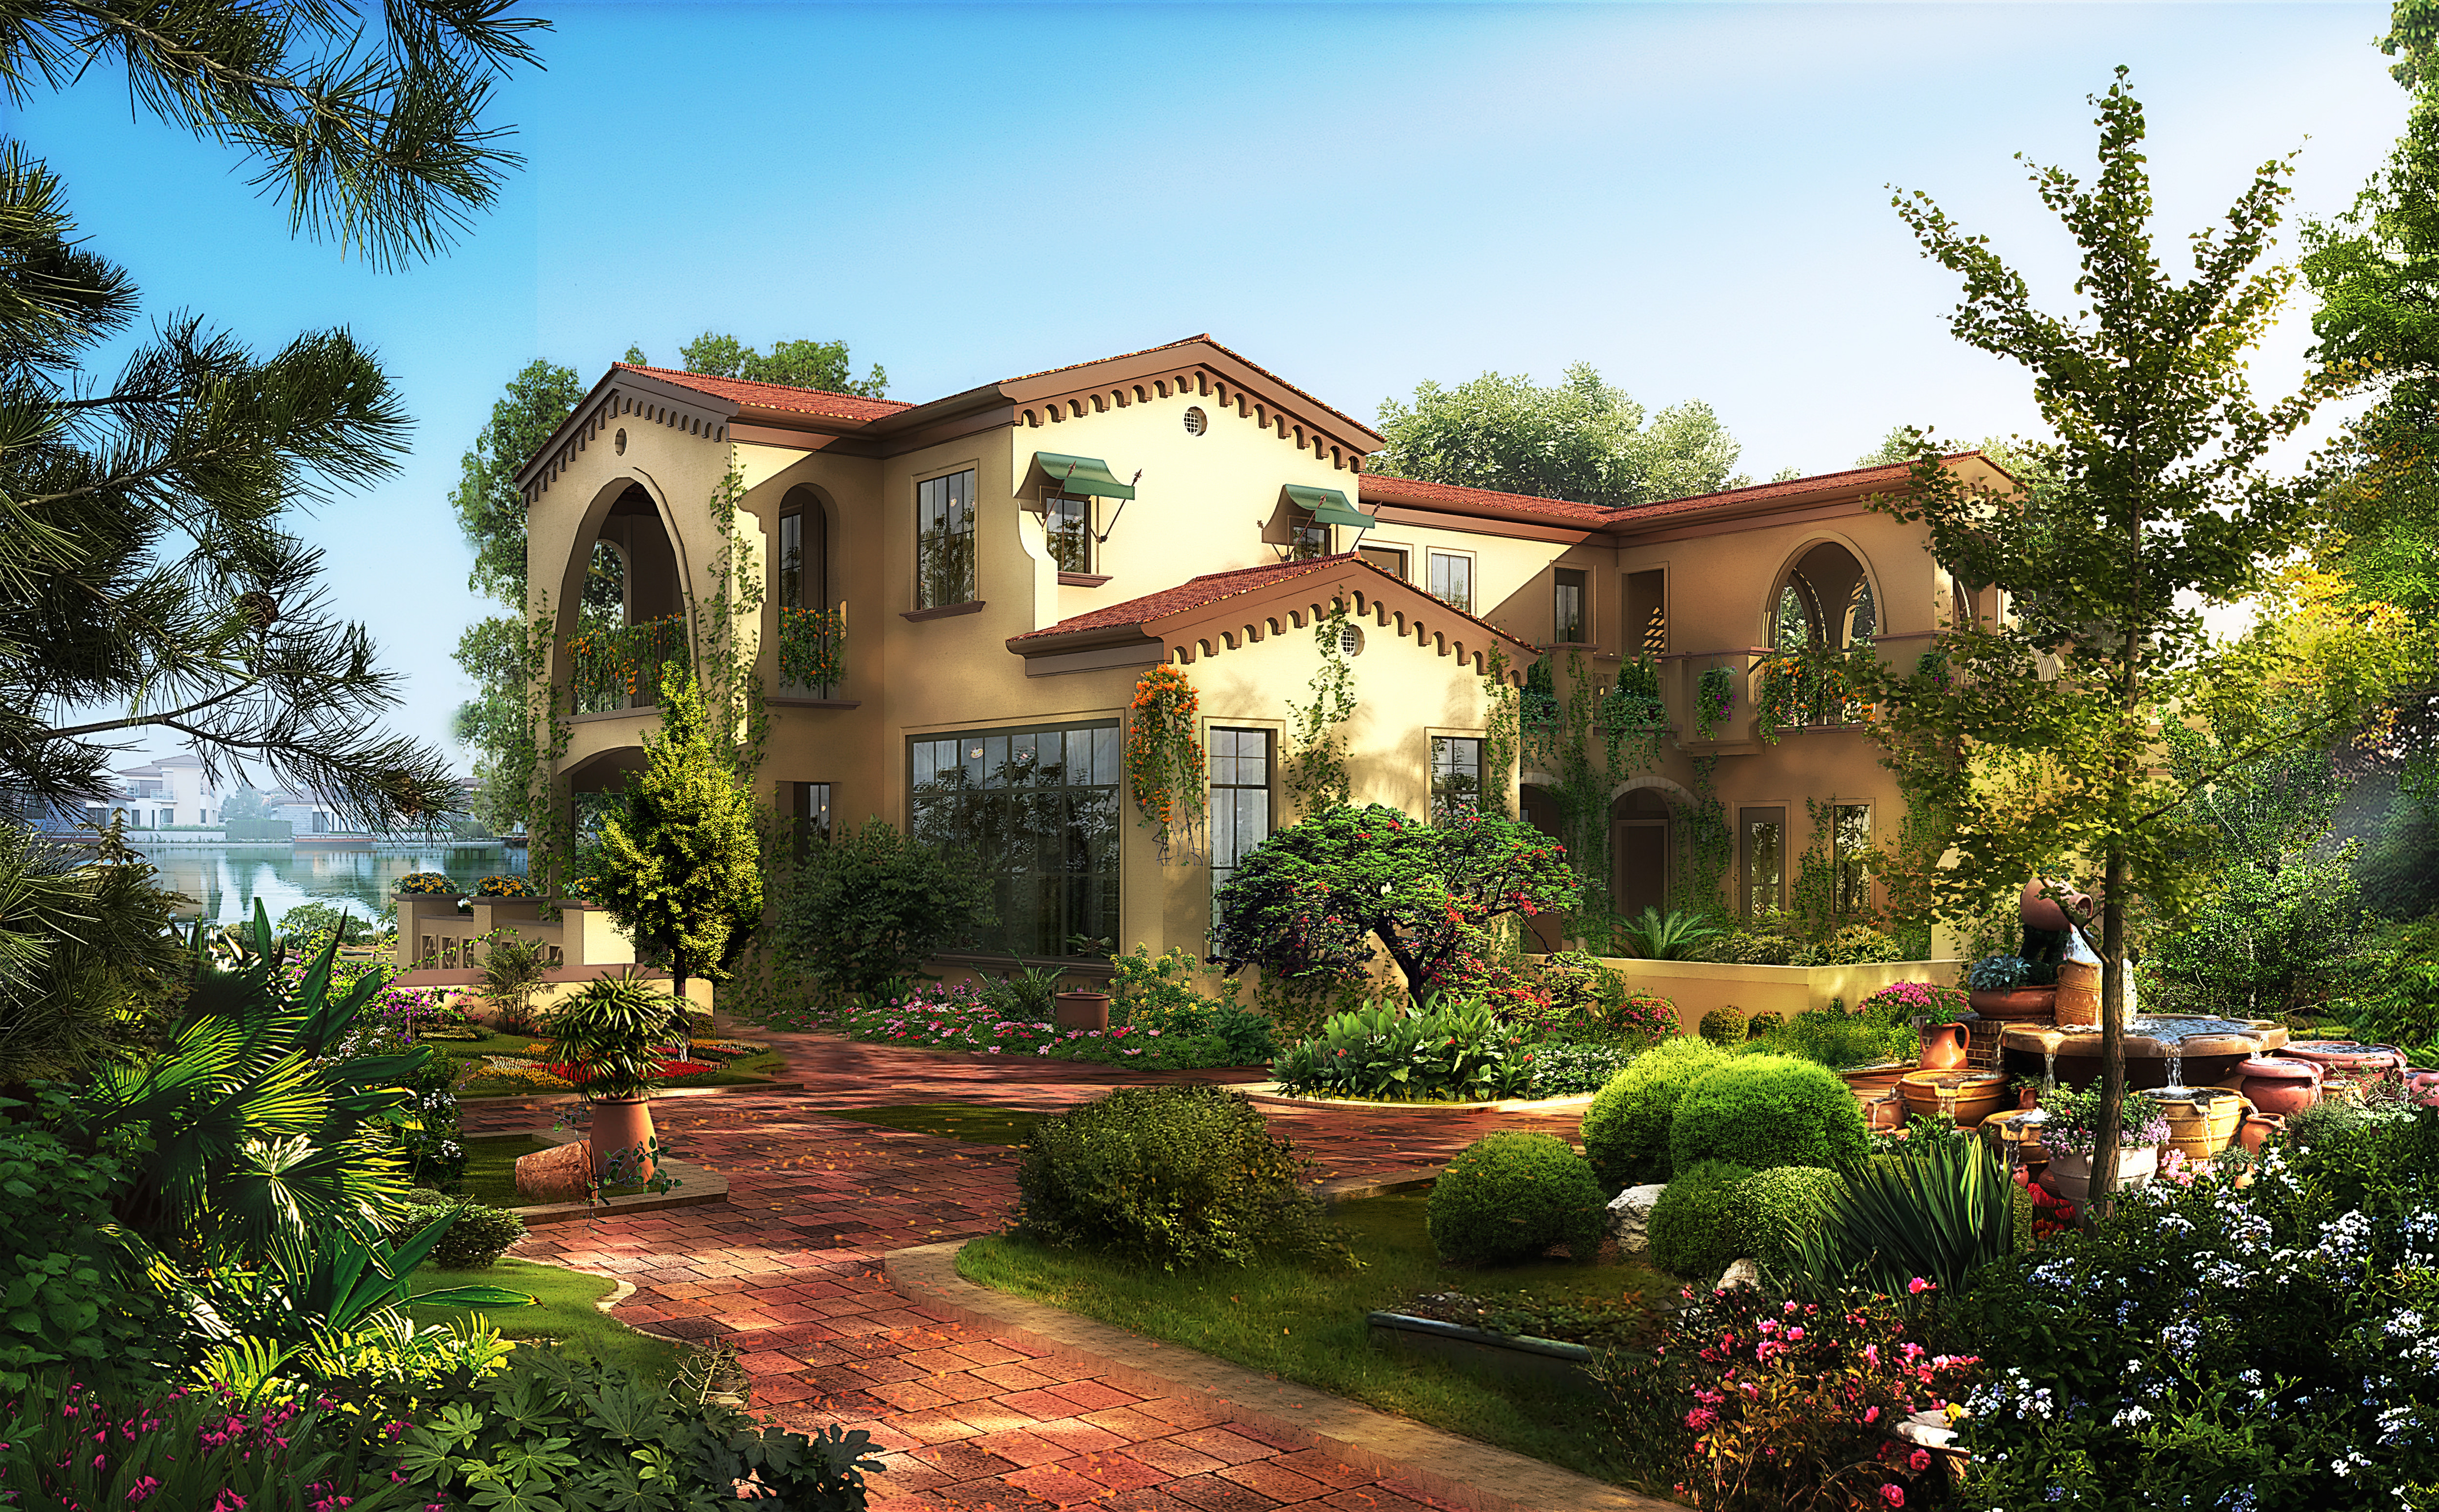 Luxury photorealistic house 667 3d models 3d model max for Luxury home models